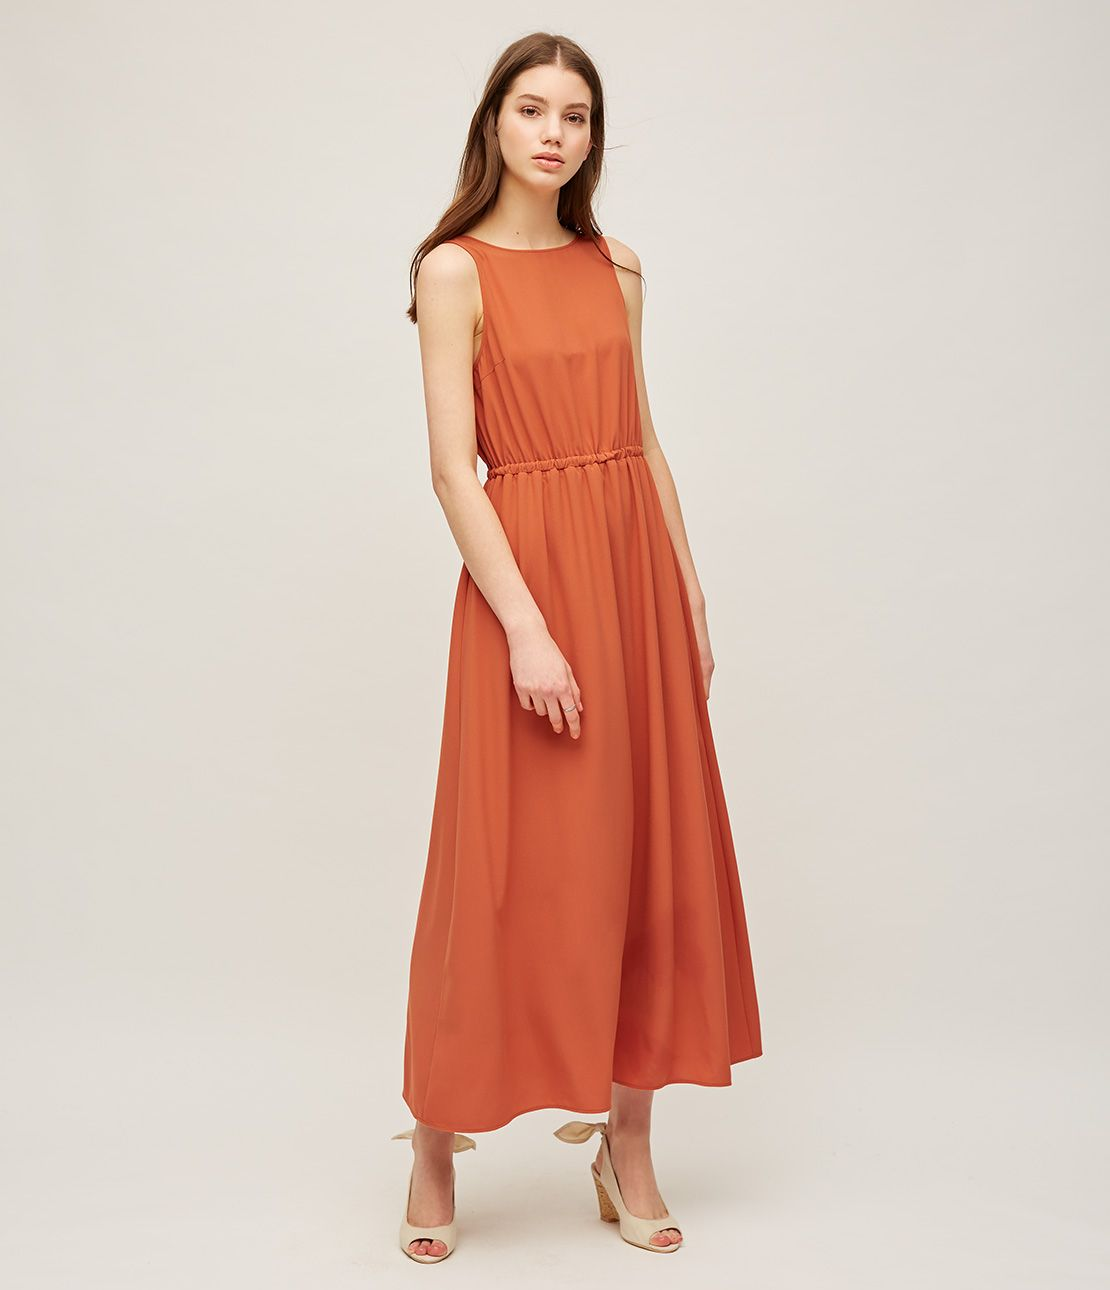 2WAY sleeveless long dress